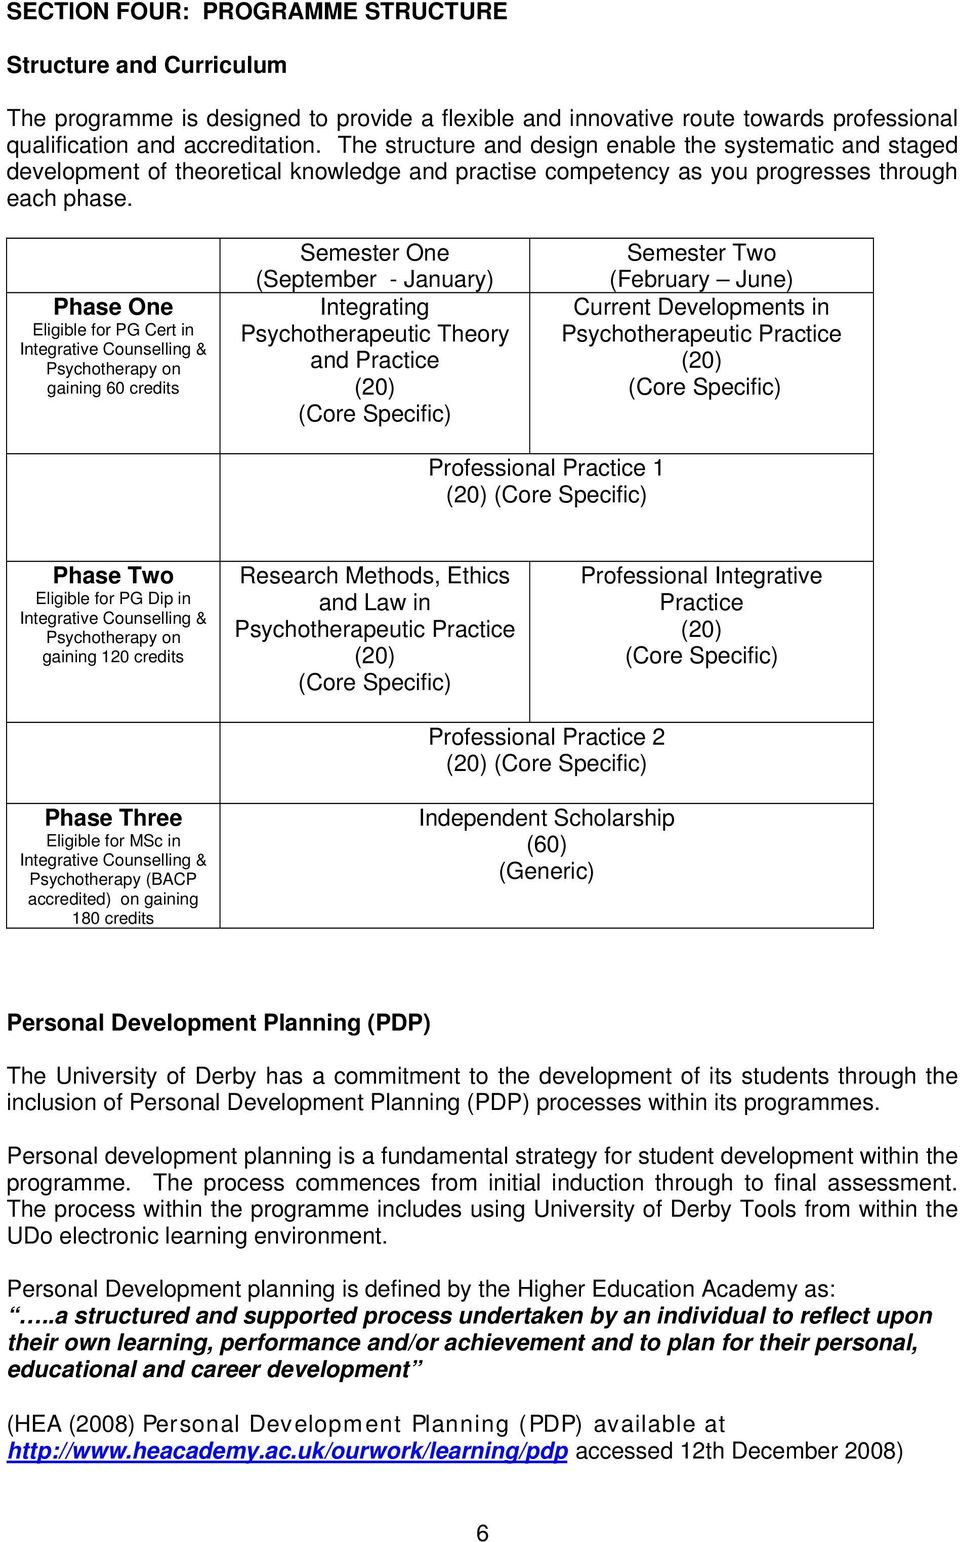 Phase One Eligible for PG Cert in Integrative Counselling & Psychotherapy on gaining 60 credits Semester One (September - January) Integrating Psychotherapeutic Theory and Practice (20) (Core